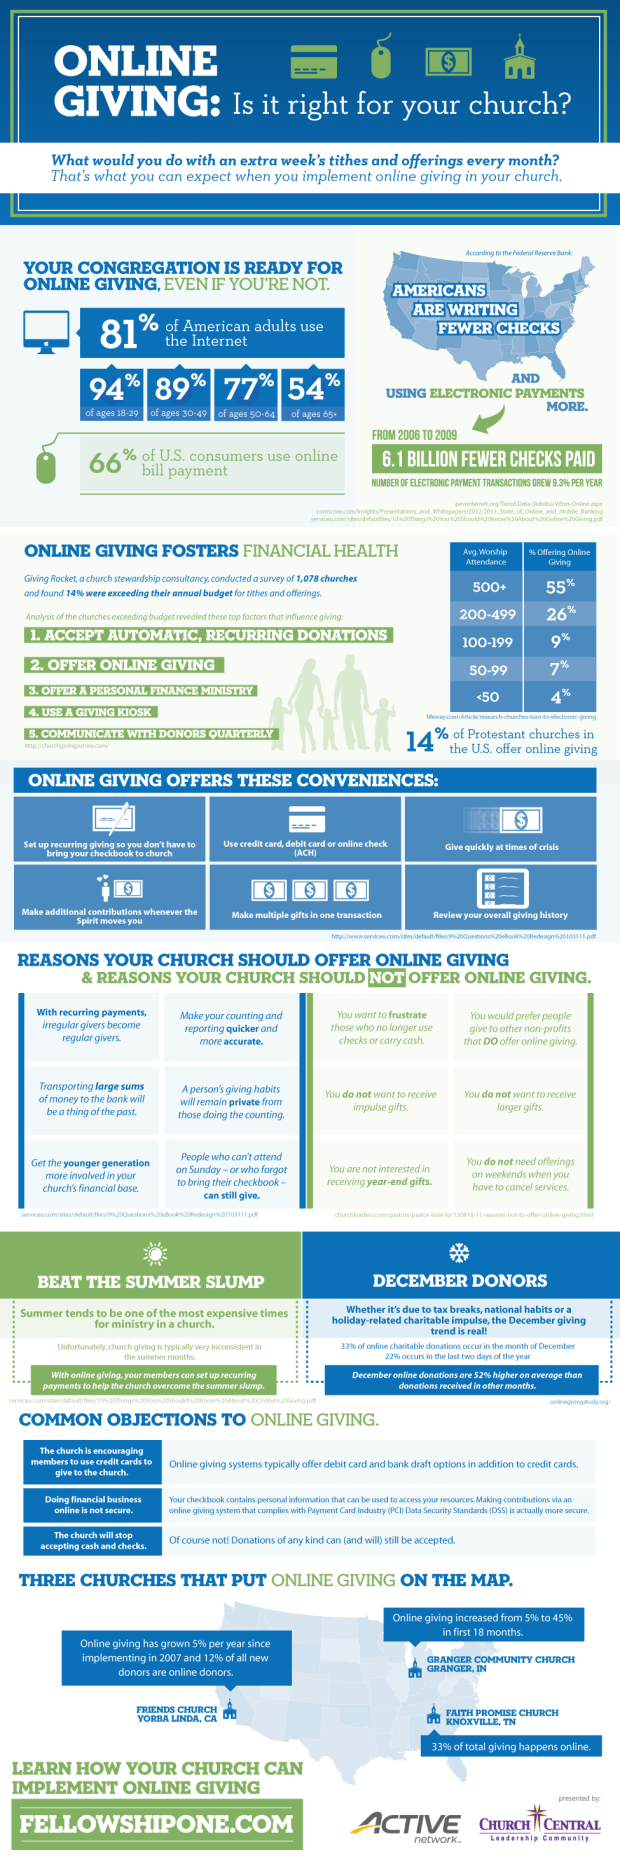 Online-Giving-Infographic